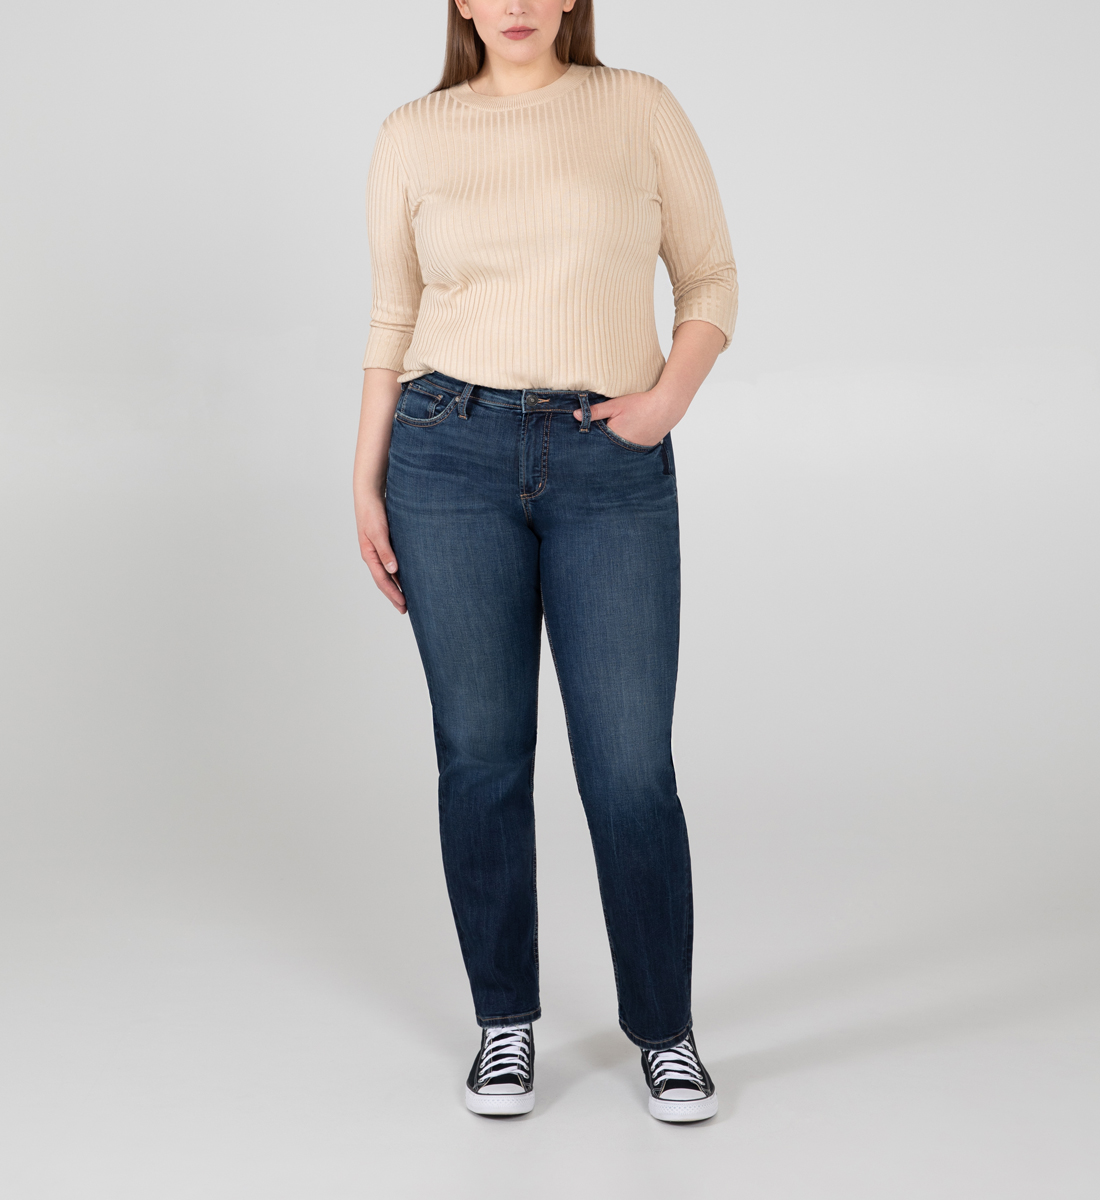 Silver Jeans Most Wanted Mid Rise Straight Leg Jeans Plus Size